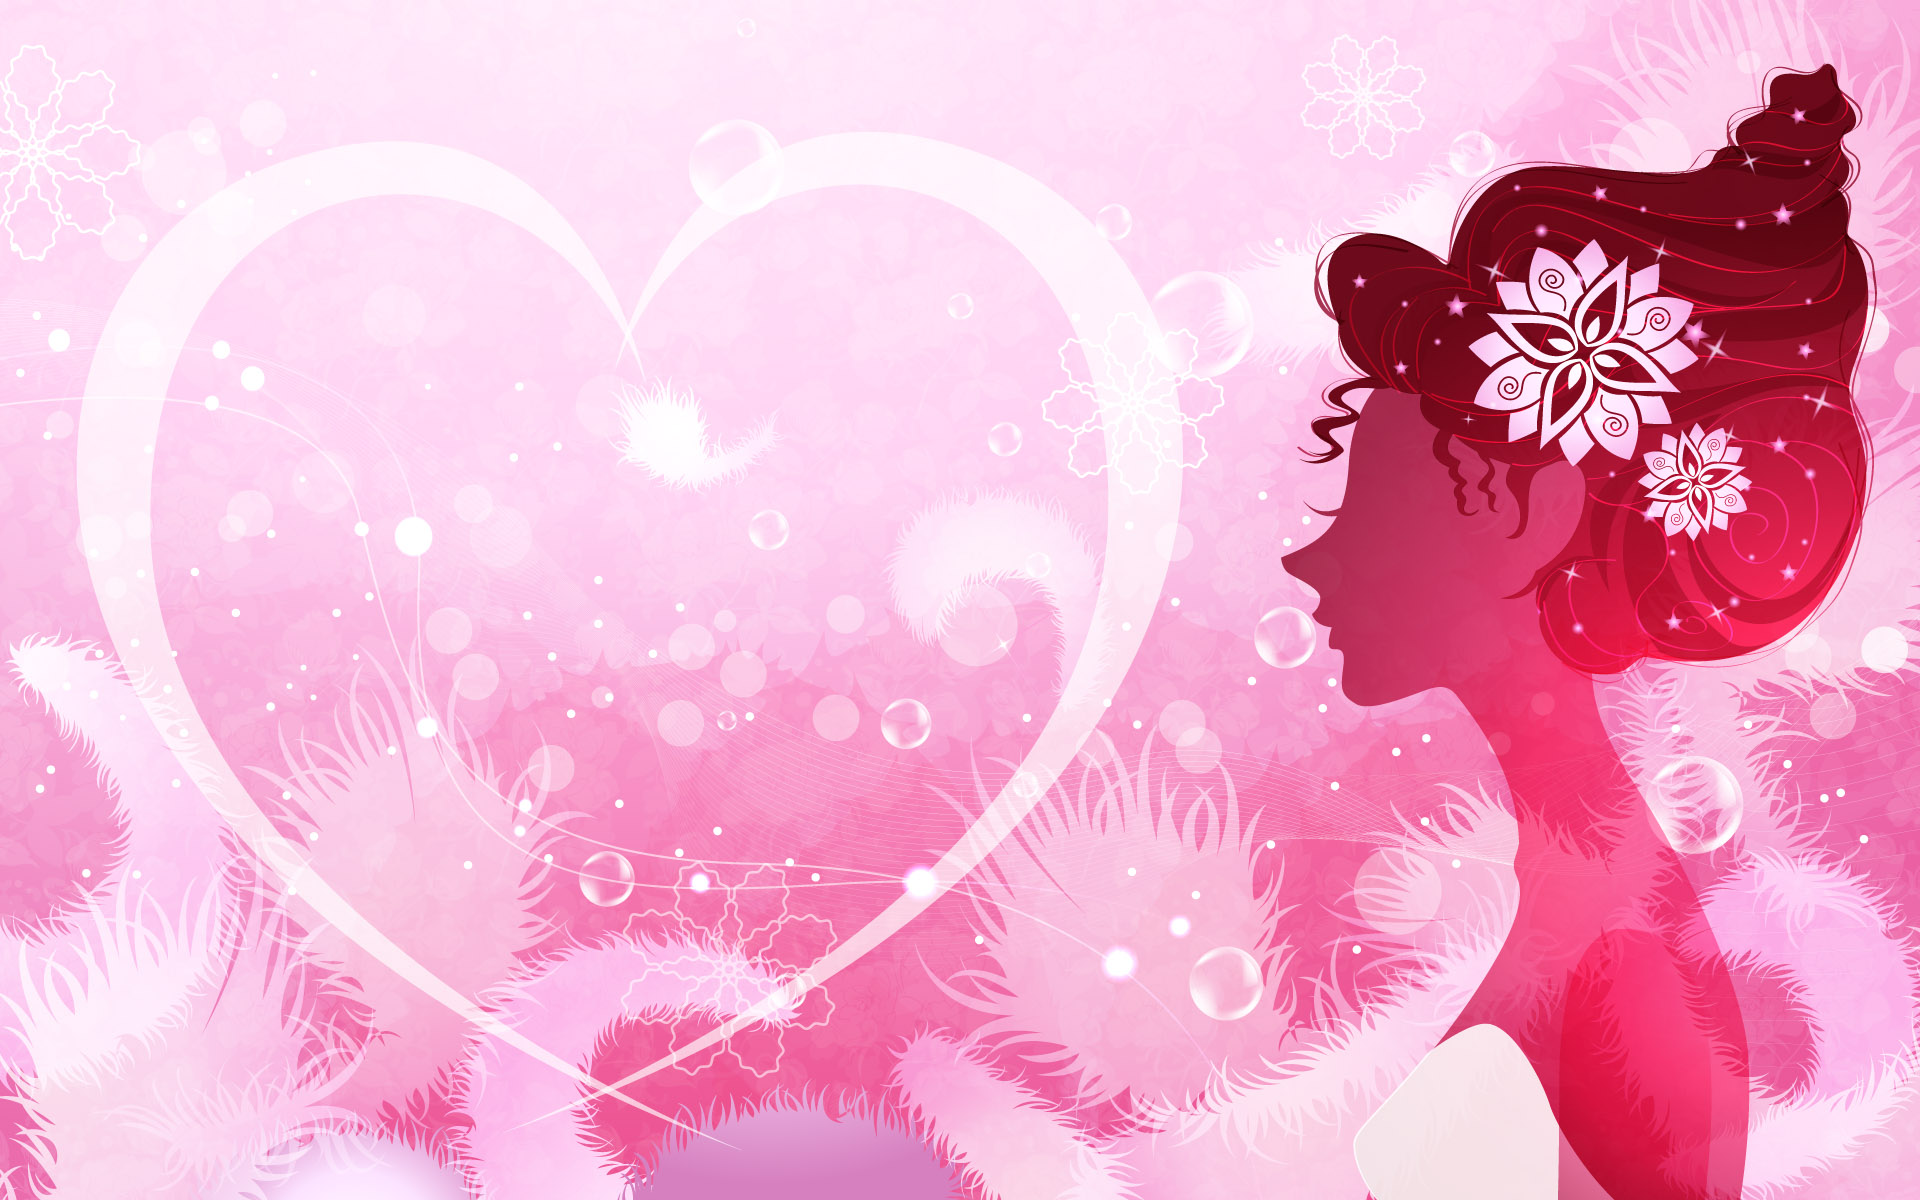 Desktop Wallpaper Cute Girl Fonds D 233 Cran Girly Tumblr Hd